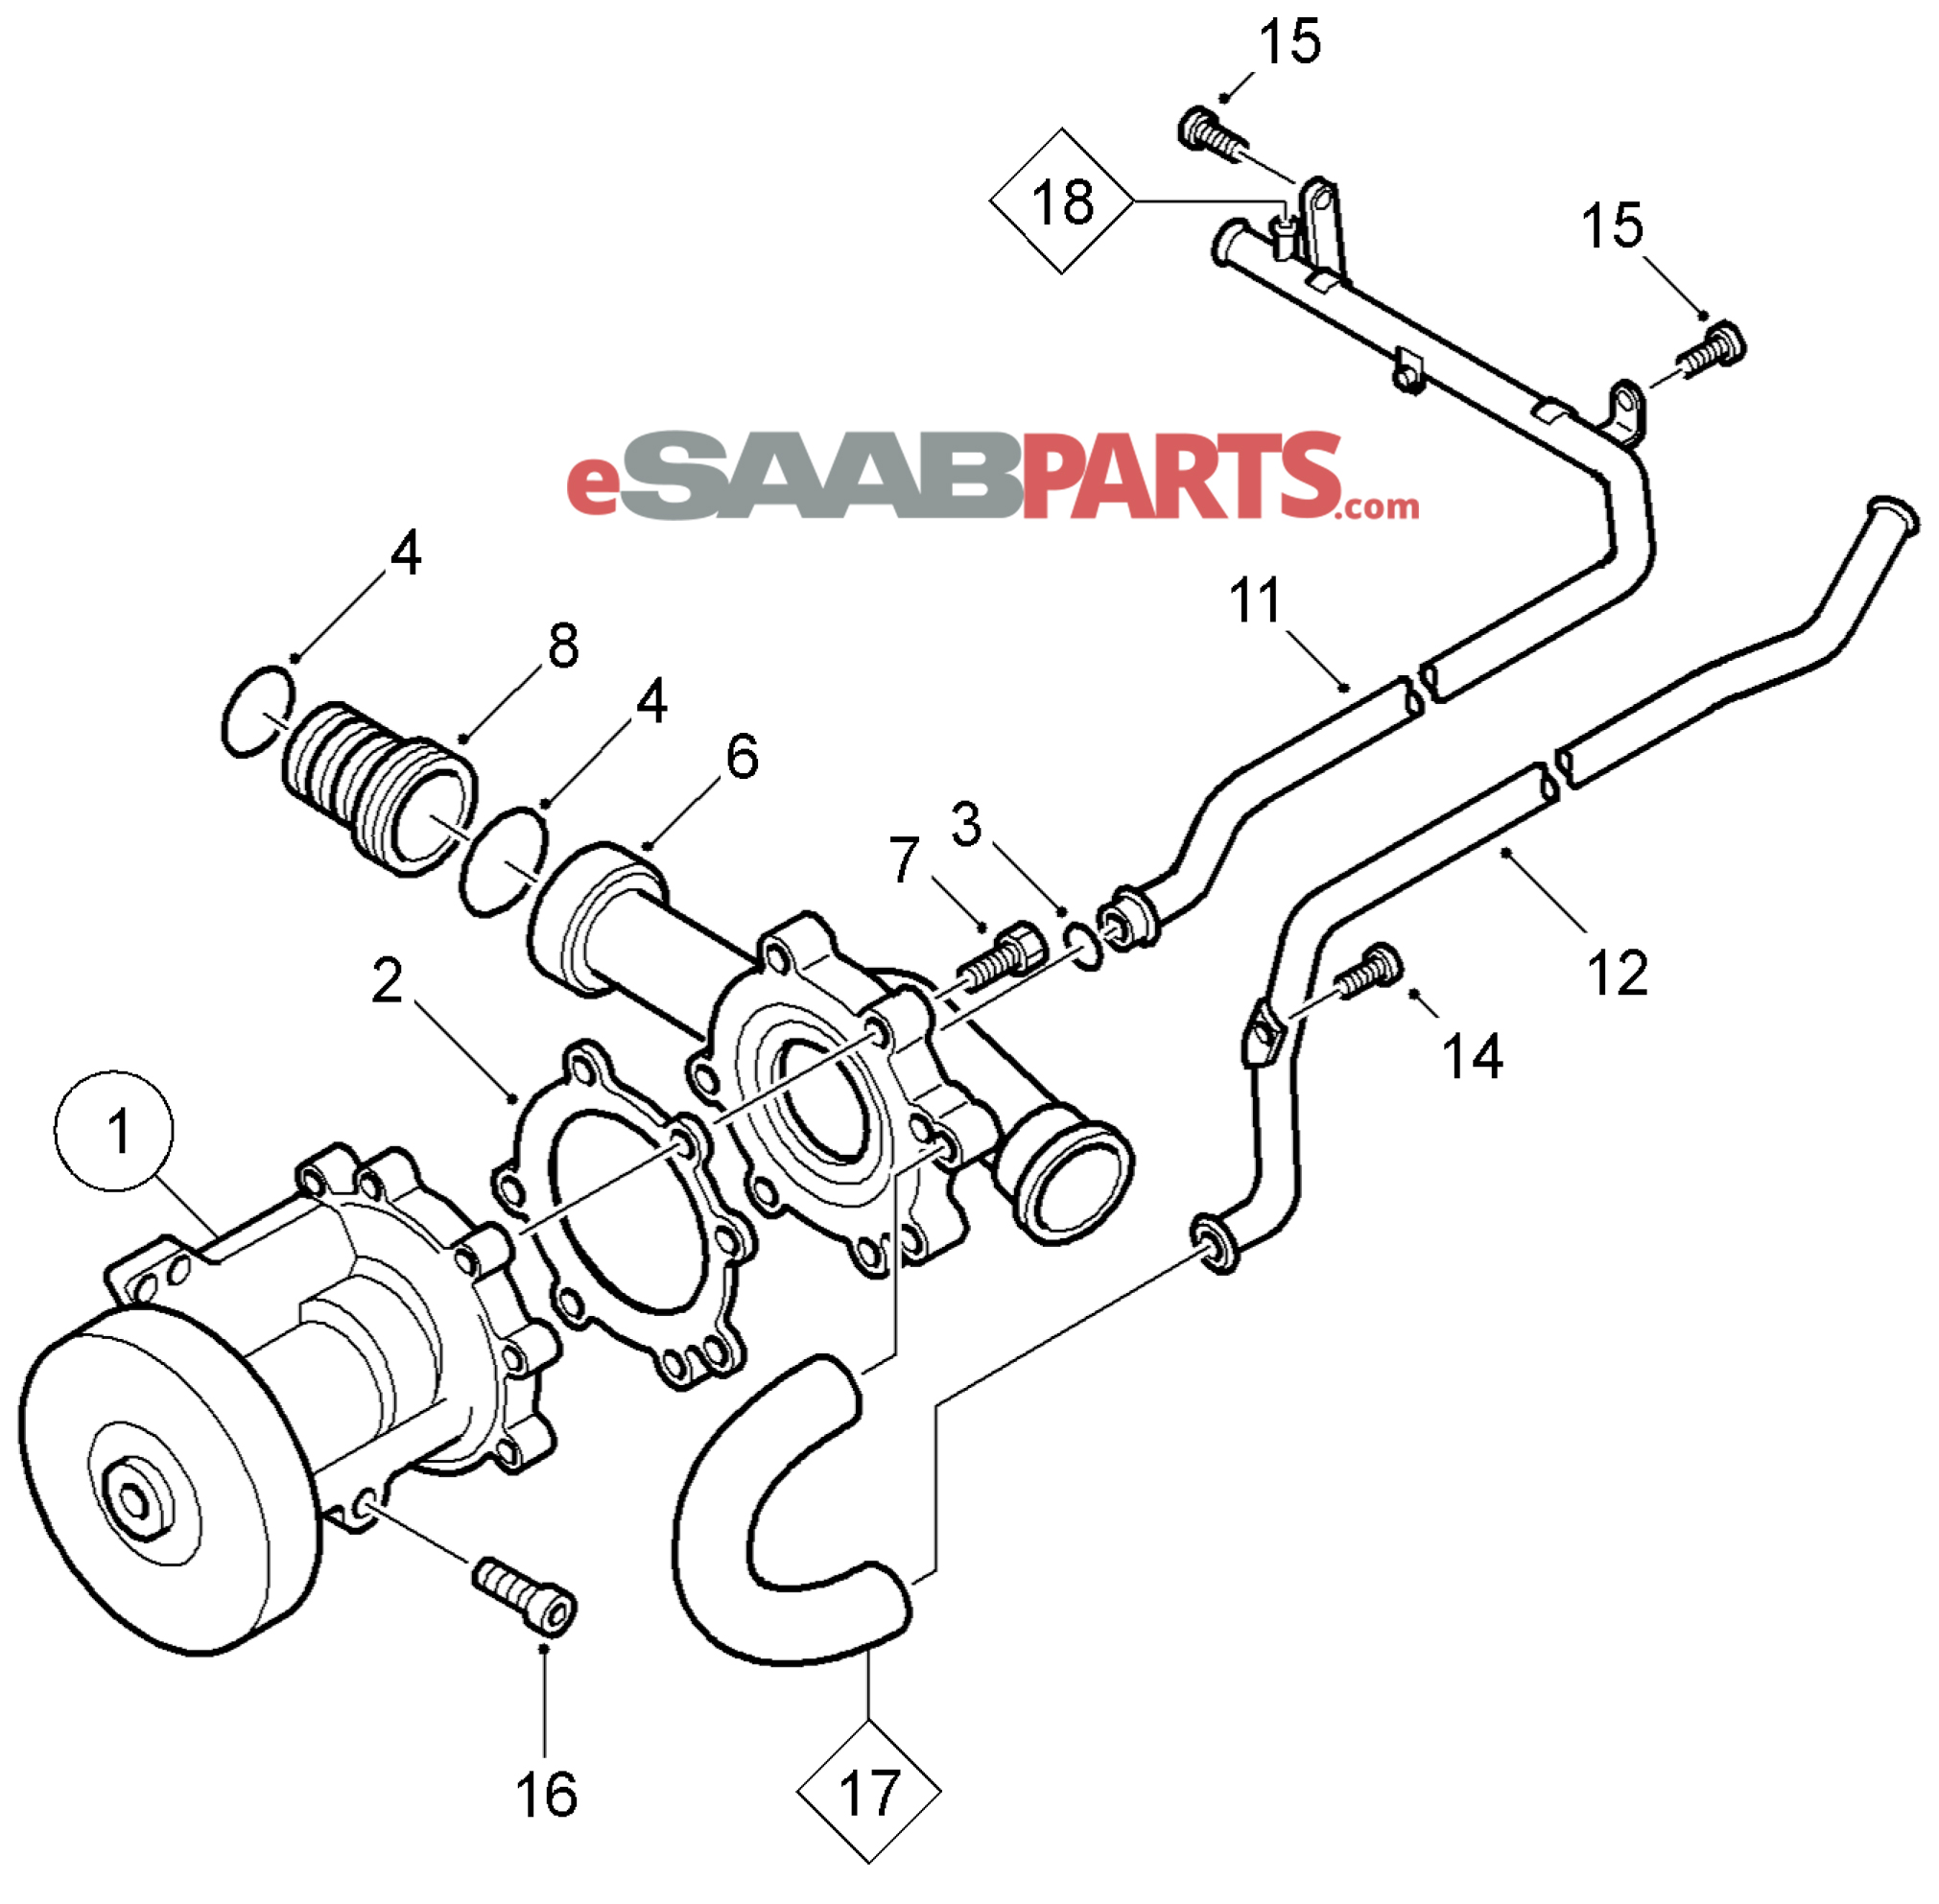 2001 bmw radiator hose diagram html